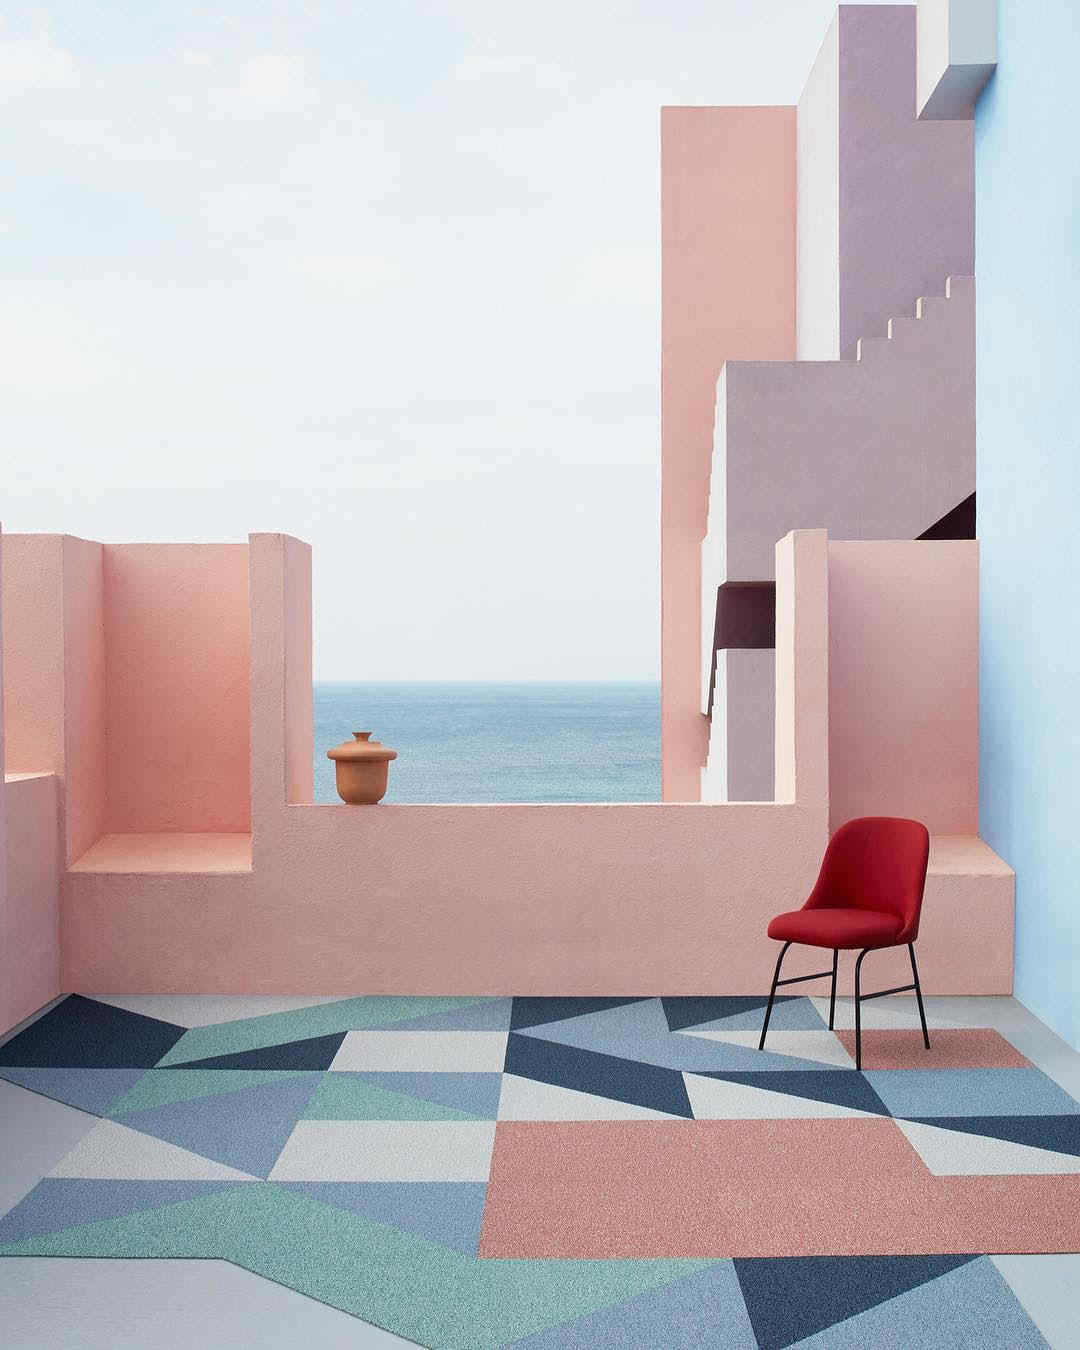 Interior Design Trends 2019: COLOR TRENDS 2020 Starting From Pantone 2019 Living Coral